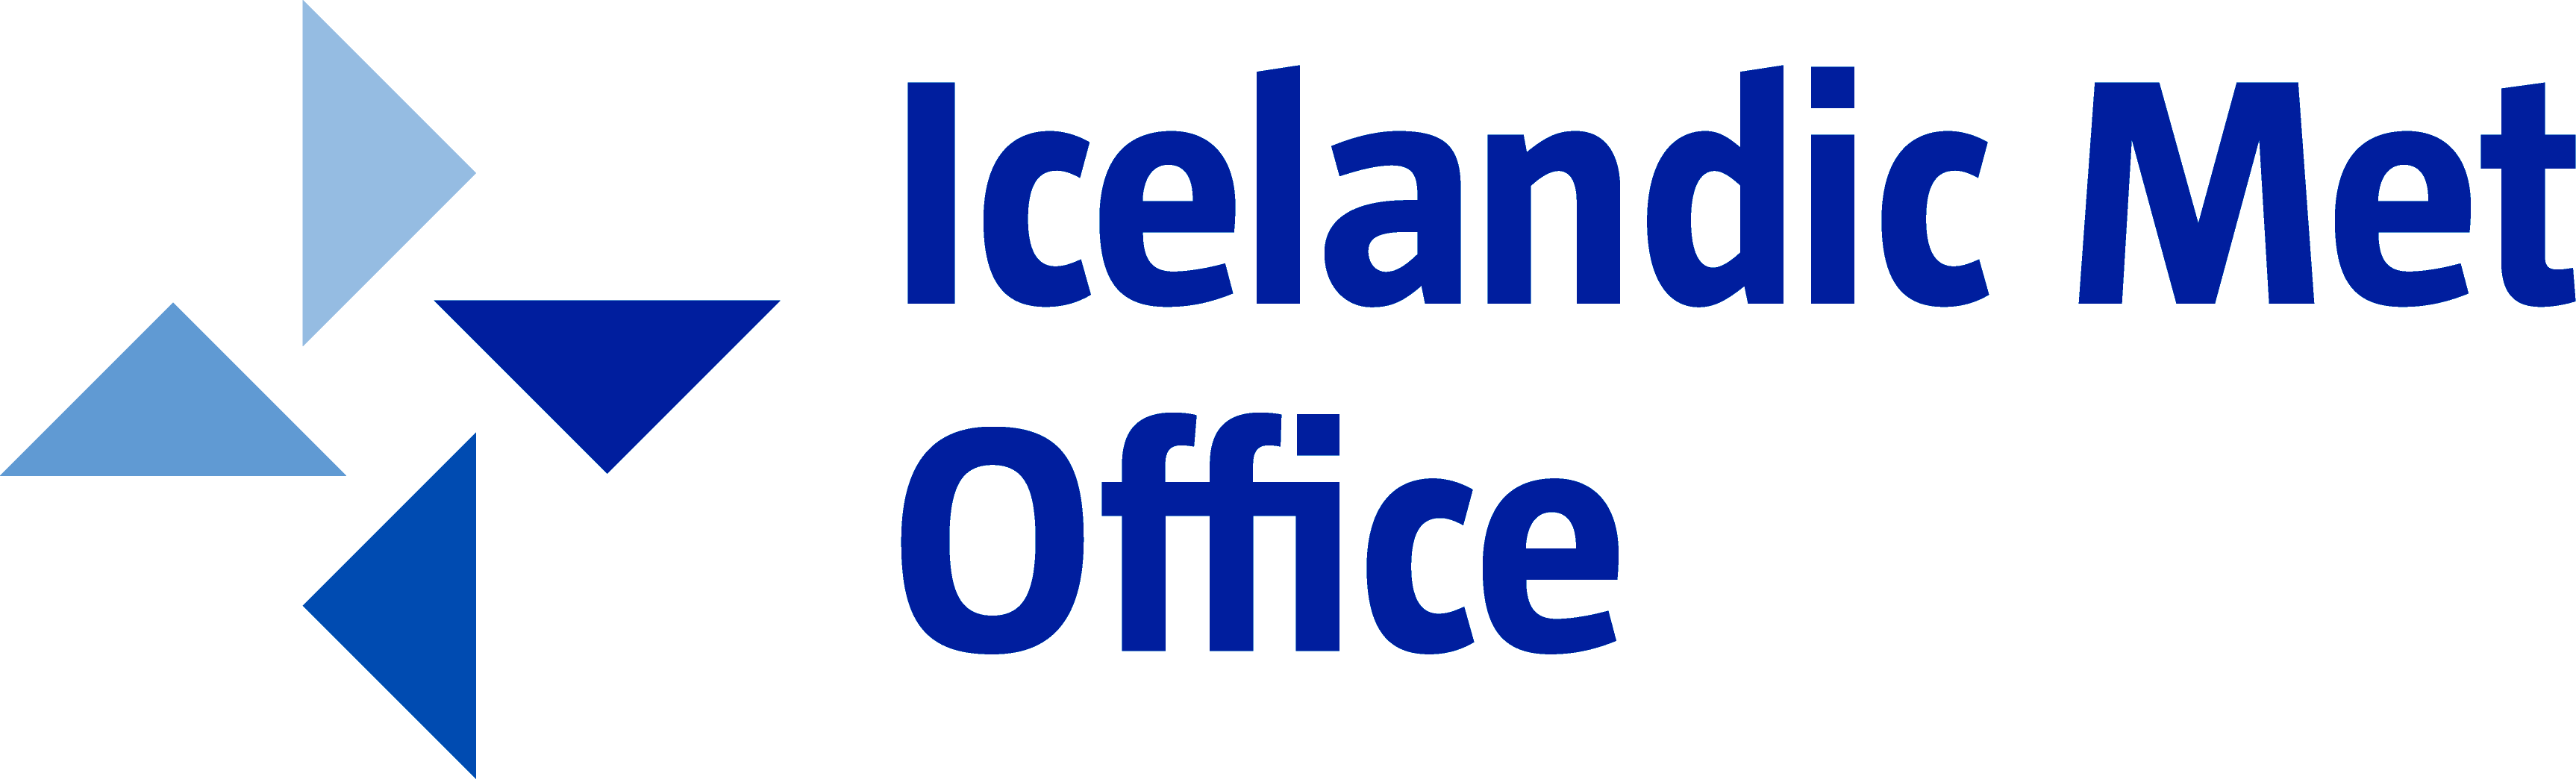 Icelandic Meteorological Office logo